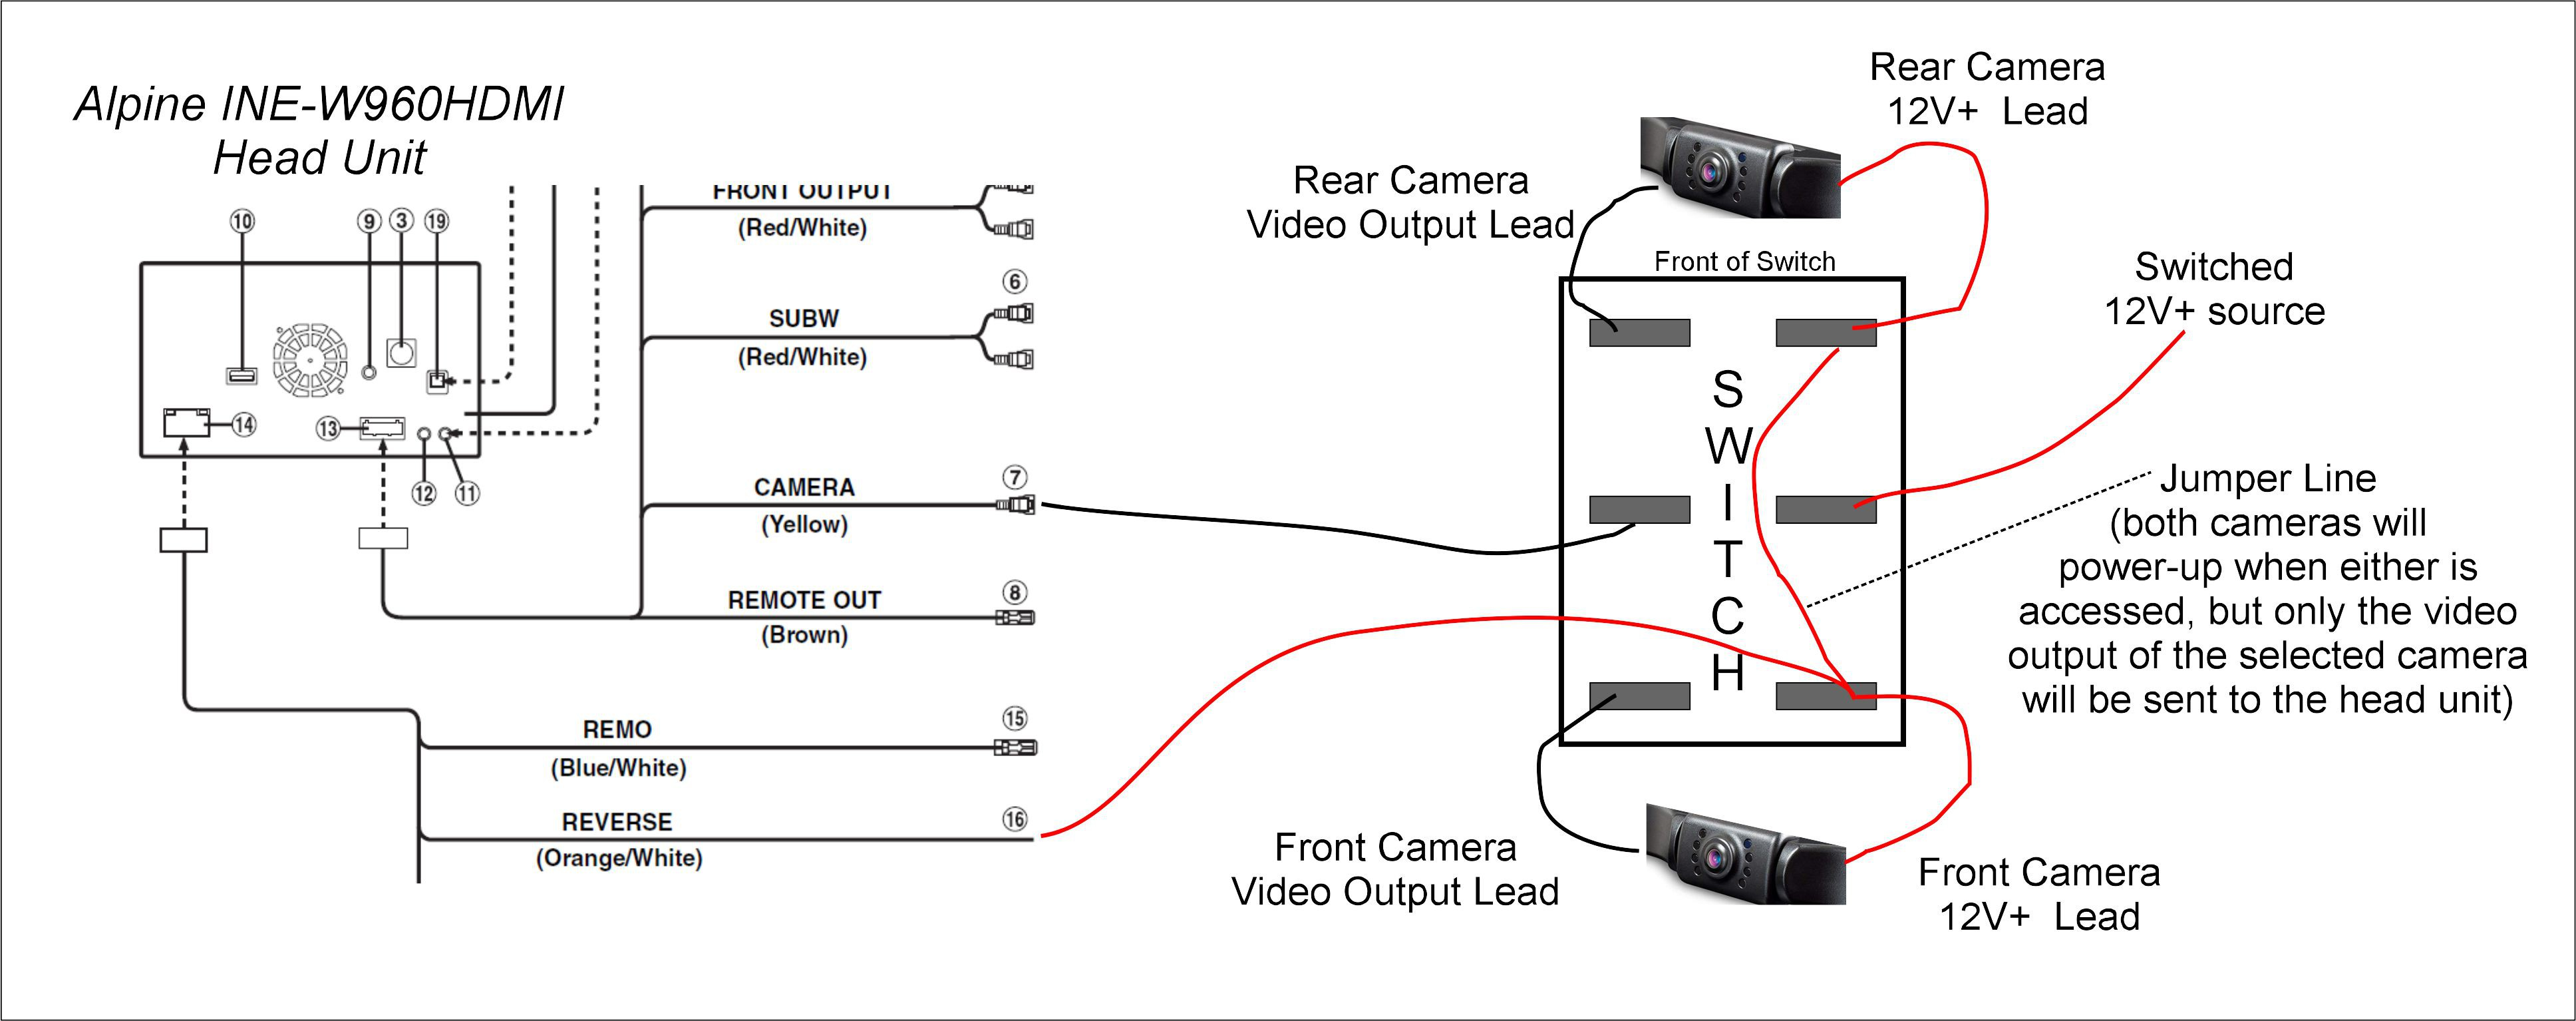 [DIAGRAM_4PO]  Switch Wiring Question -- Did I get this right? - Techtalk Speaker  Building, Audio, Video Discussion Forum | Alpine Camera Wiring Diagram |  | TechTalk Parts Express